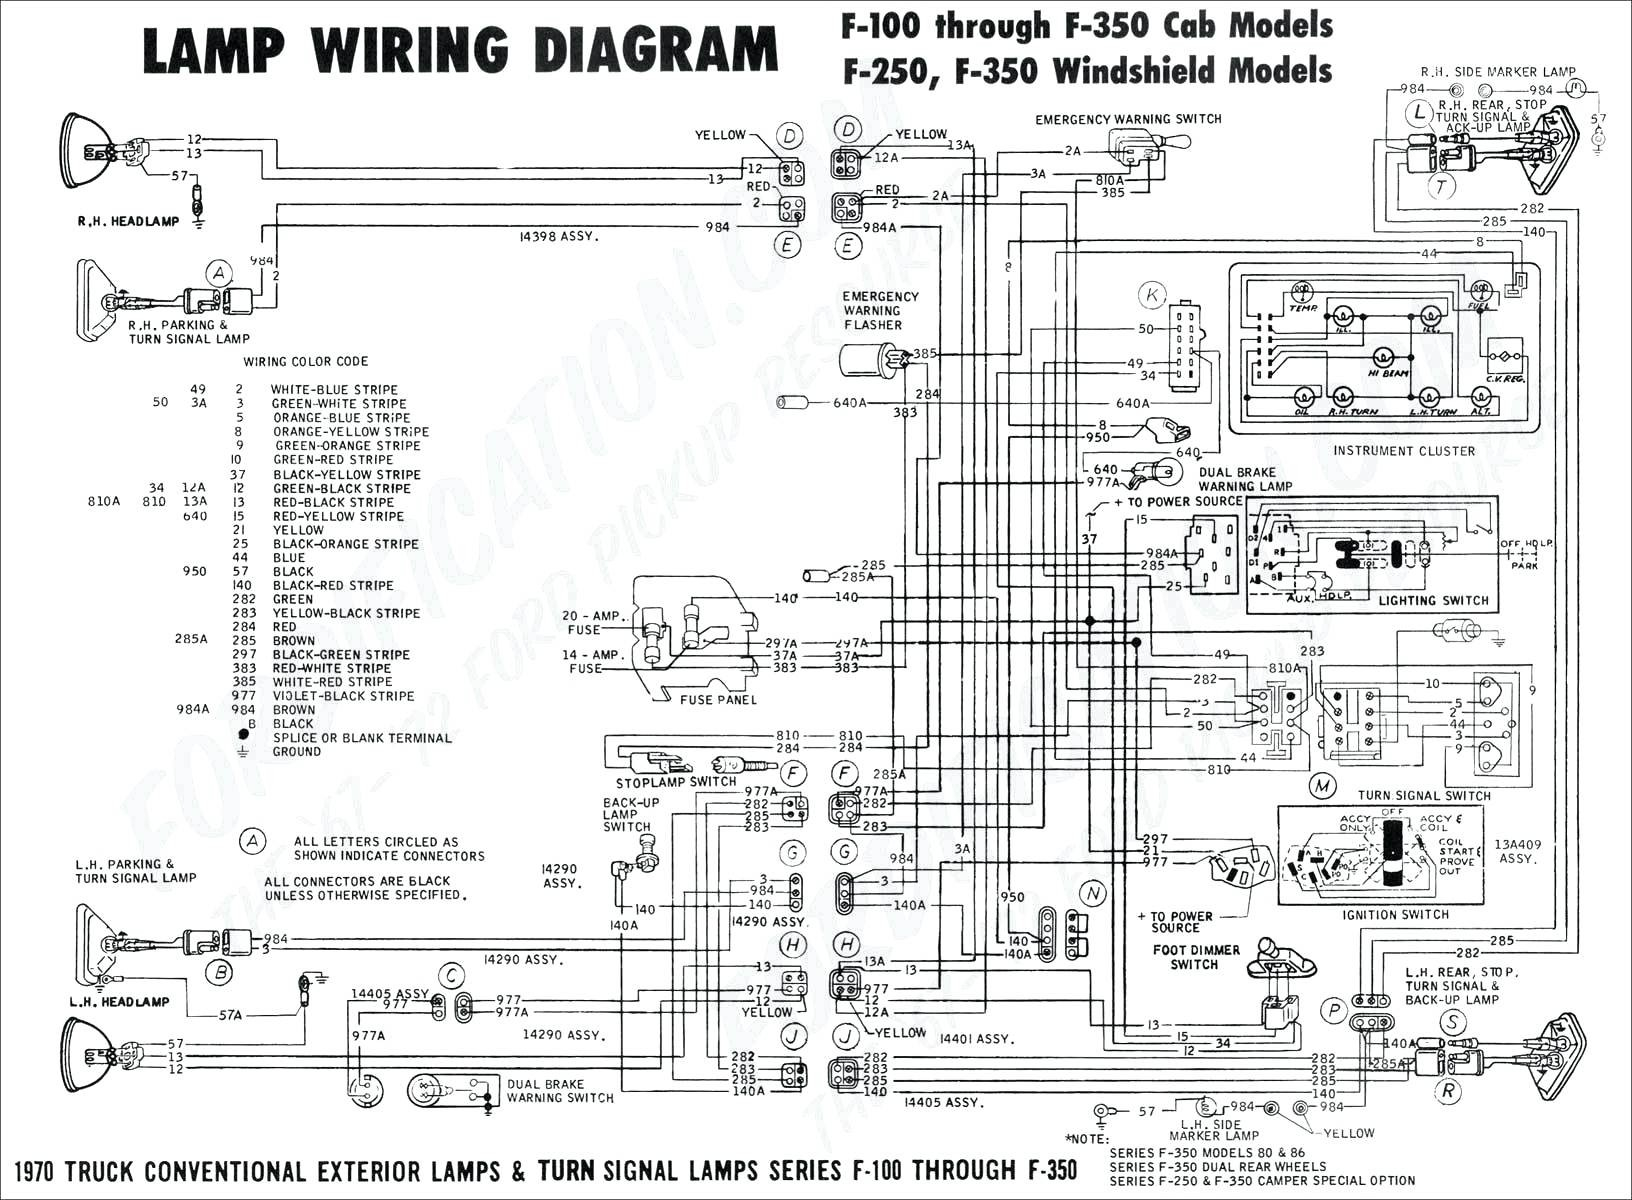 1984 chevy silverado wiring diagram advantages of cause and effect 2015 gallery